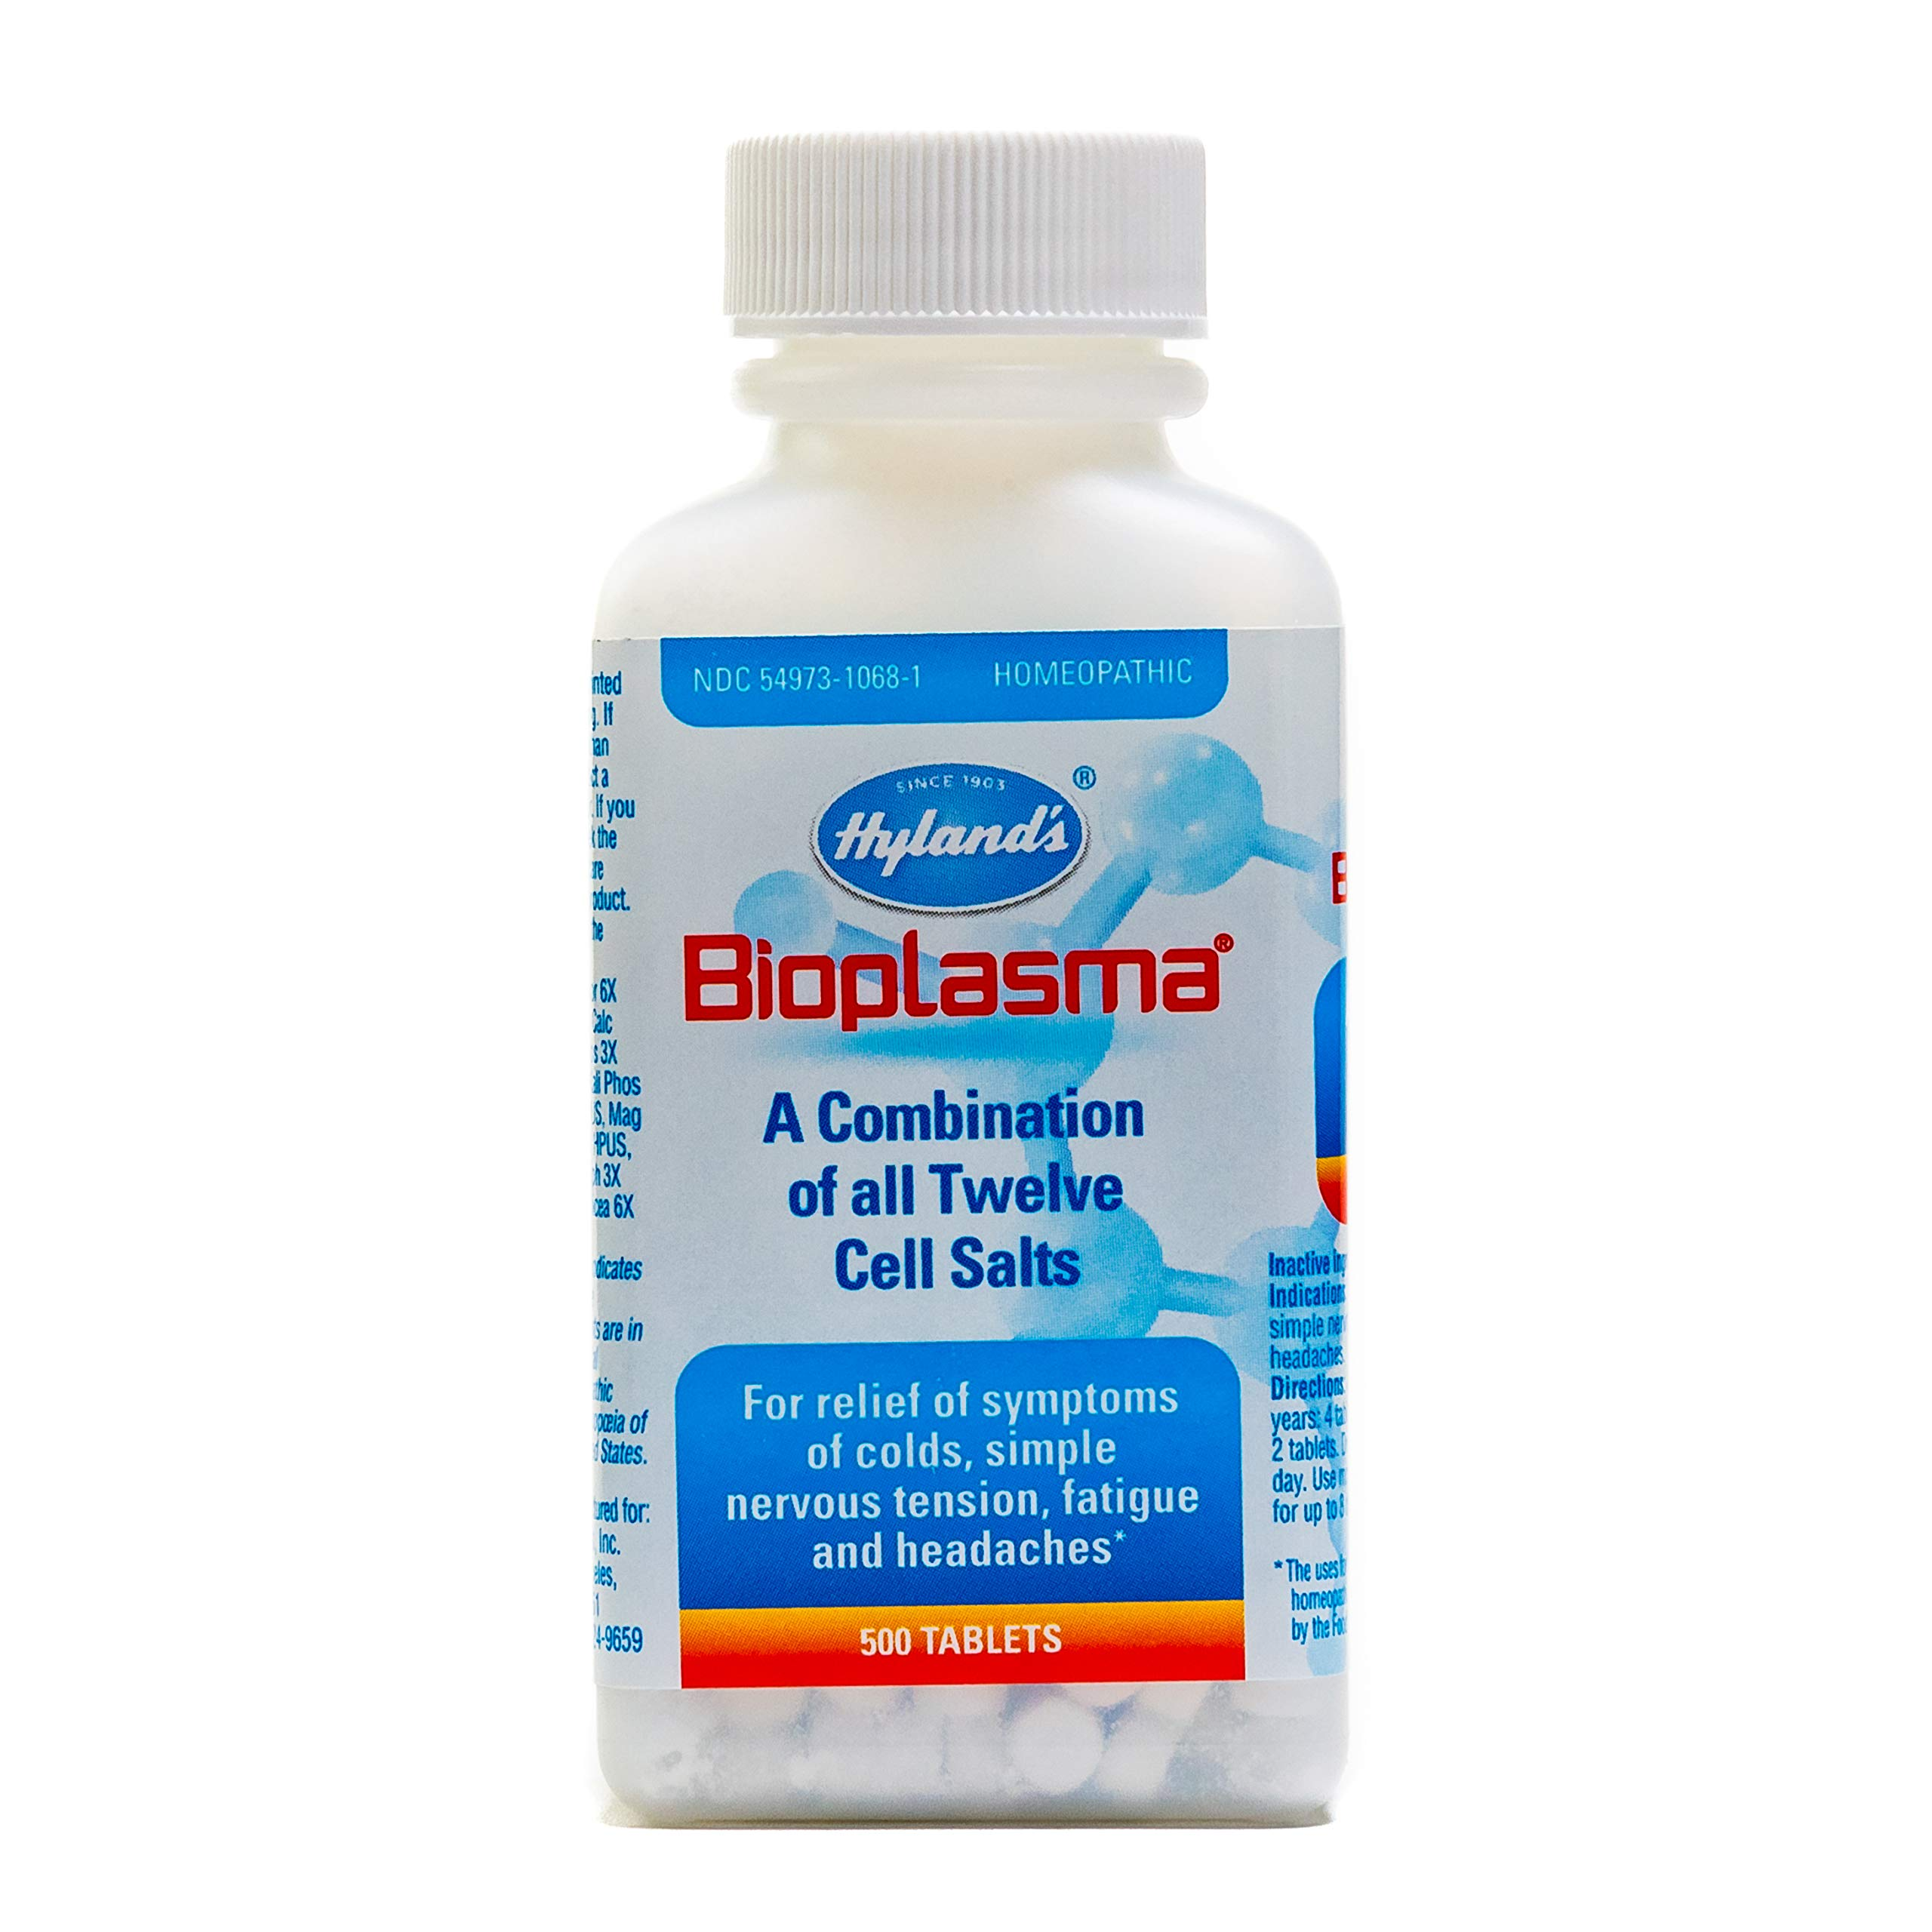 Hyland's Bioplasma Cell Salts Tablets, Natural Homeopathic Combination of Cell Salts Vital to Cellular Function, Balance Electrolytes, 500 Count, White